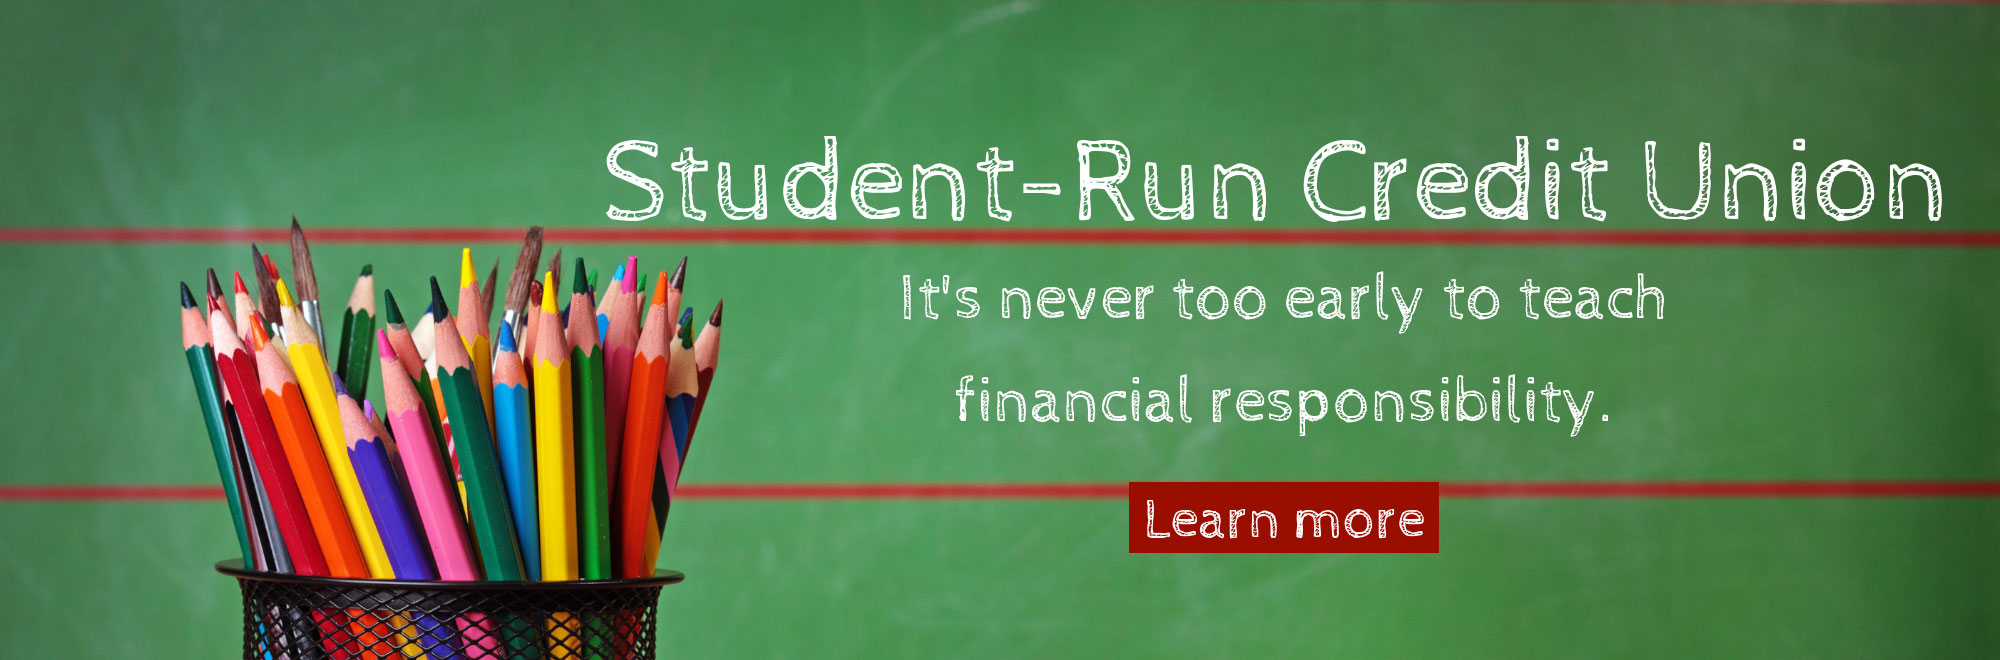 Student-Run Credit Union-Learn More